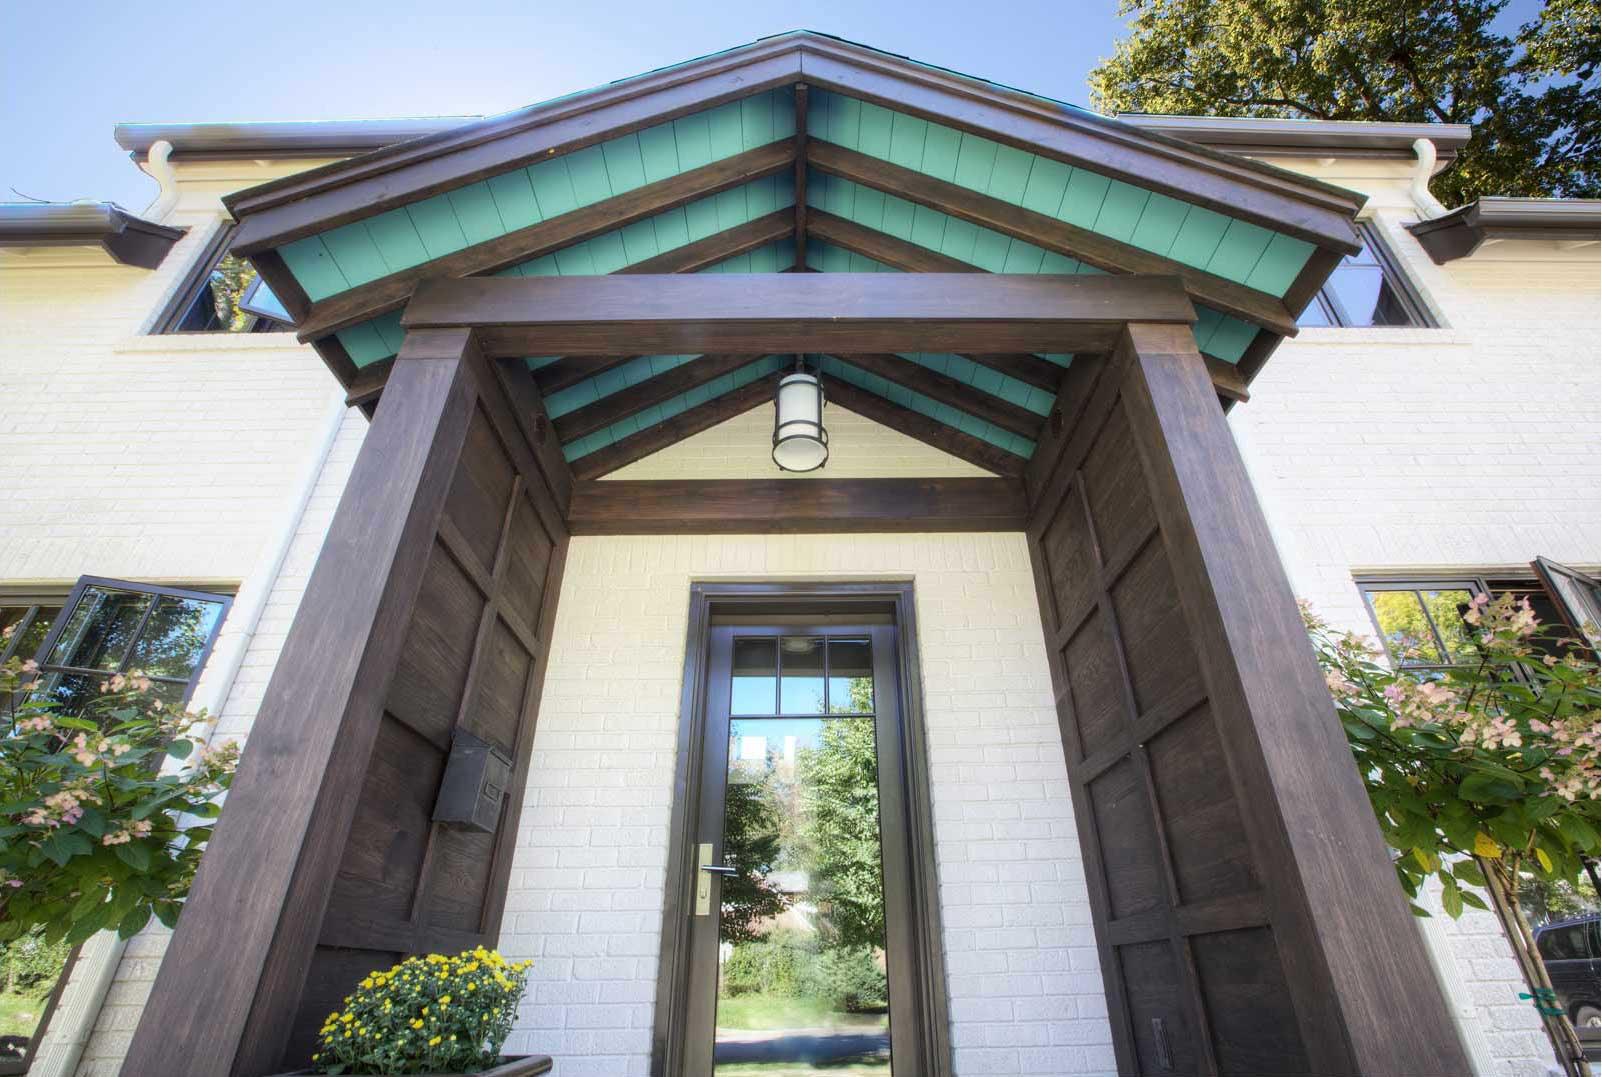 New entry porch reinforces Craftsman-Tudor character of existing house while hinting of a revitalized interior - Butler-Tarkington Modern Tudor - Indianapolis, IN